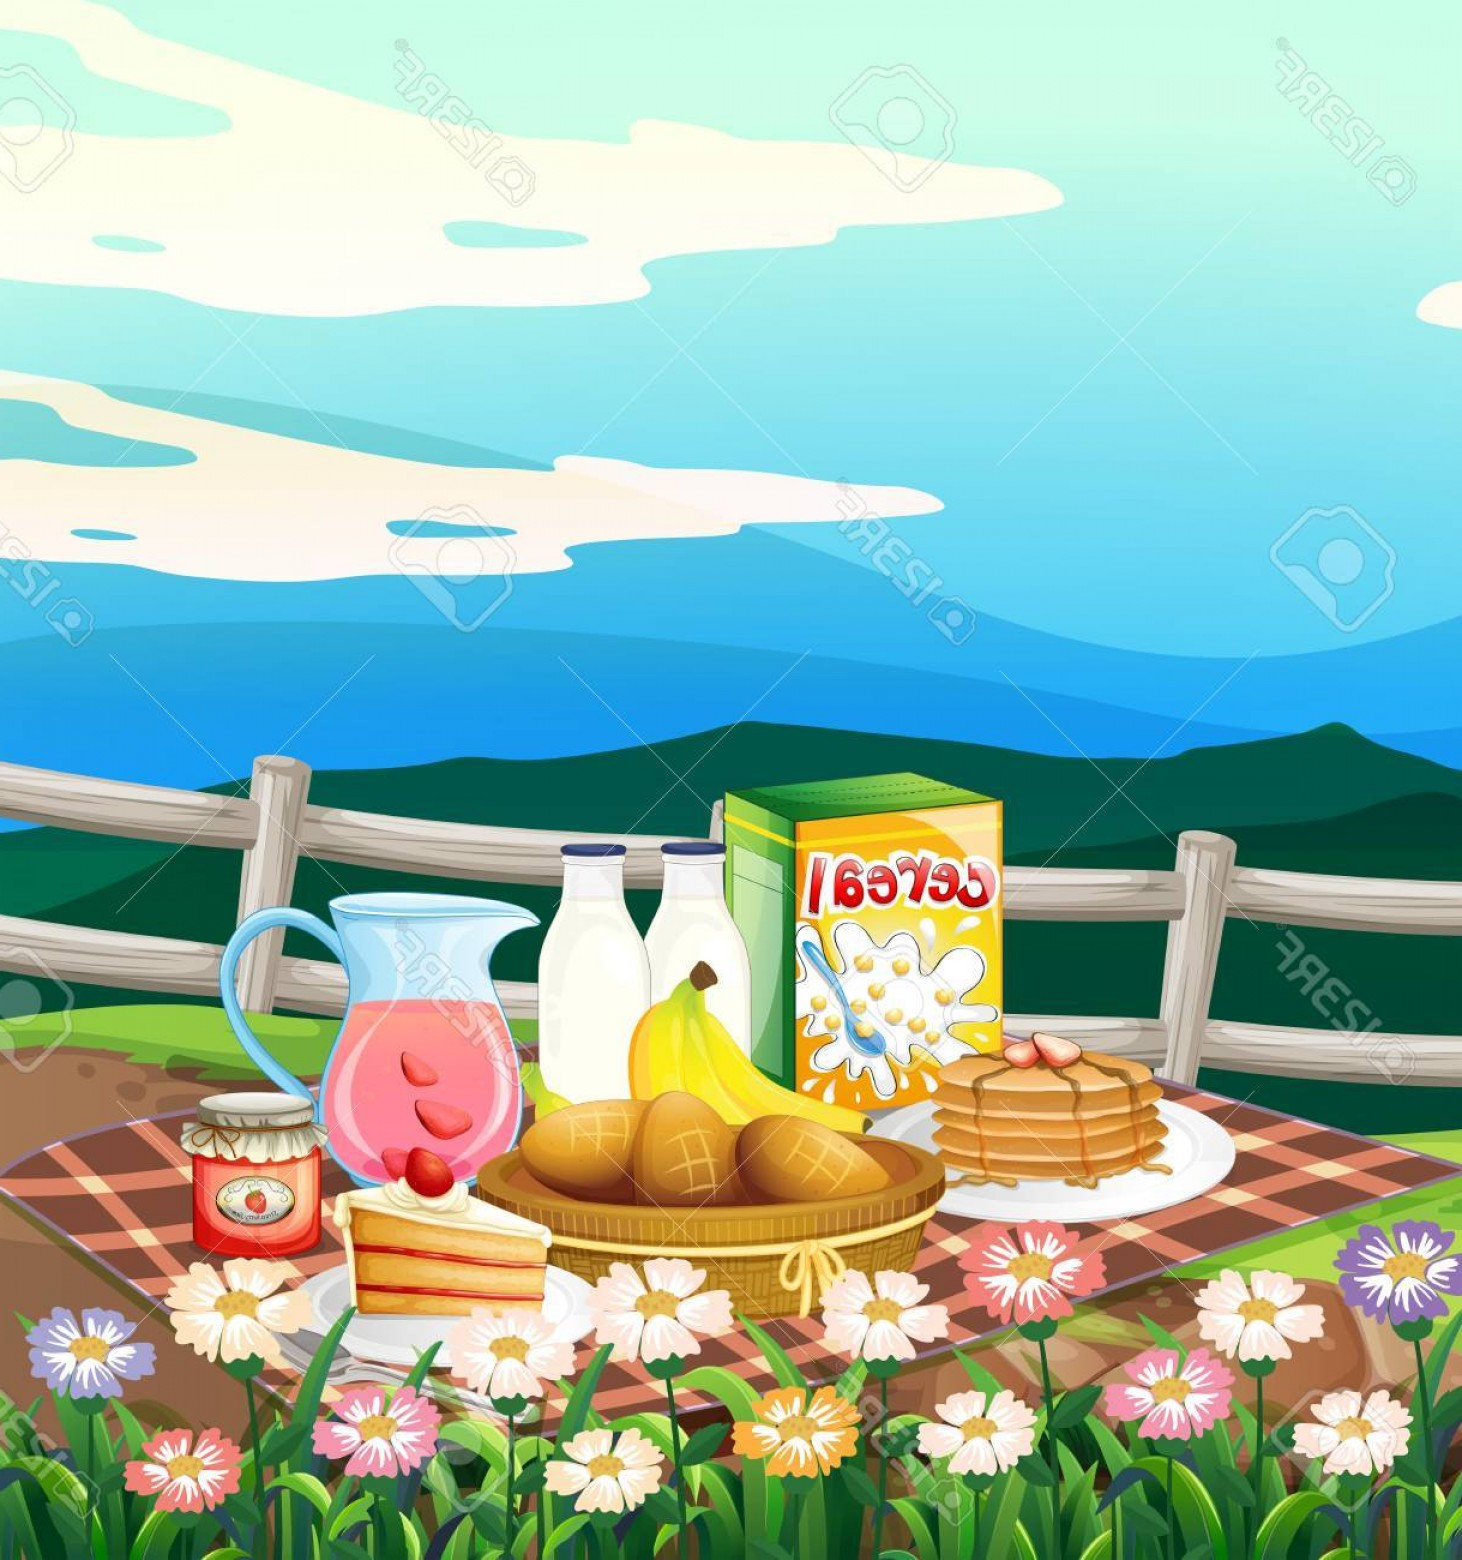 Picnic Vector Scenery: Photostock Vector Scene With Breakfast Set On Picnic Cloth Illustration